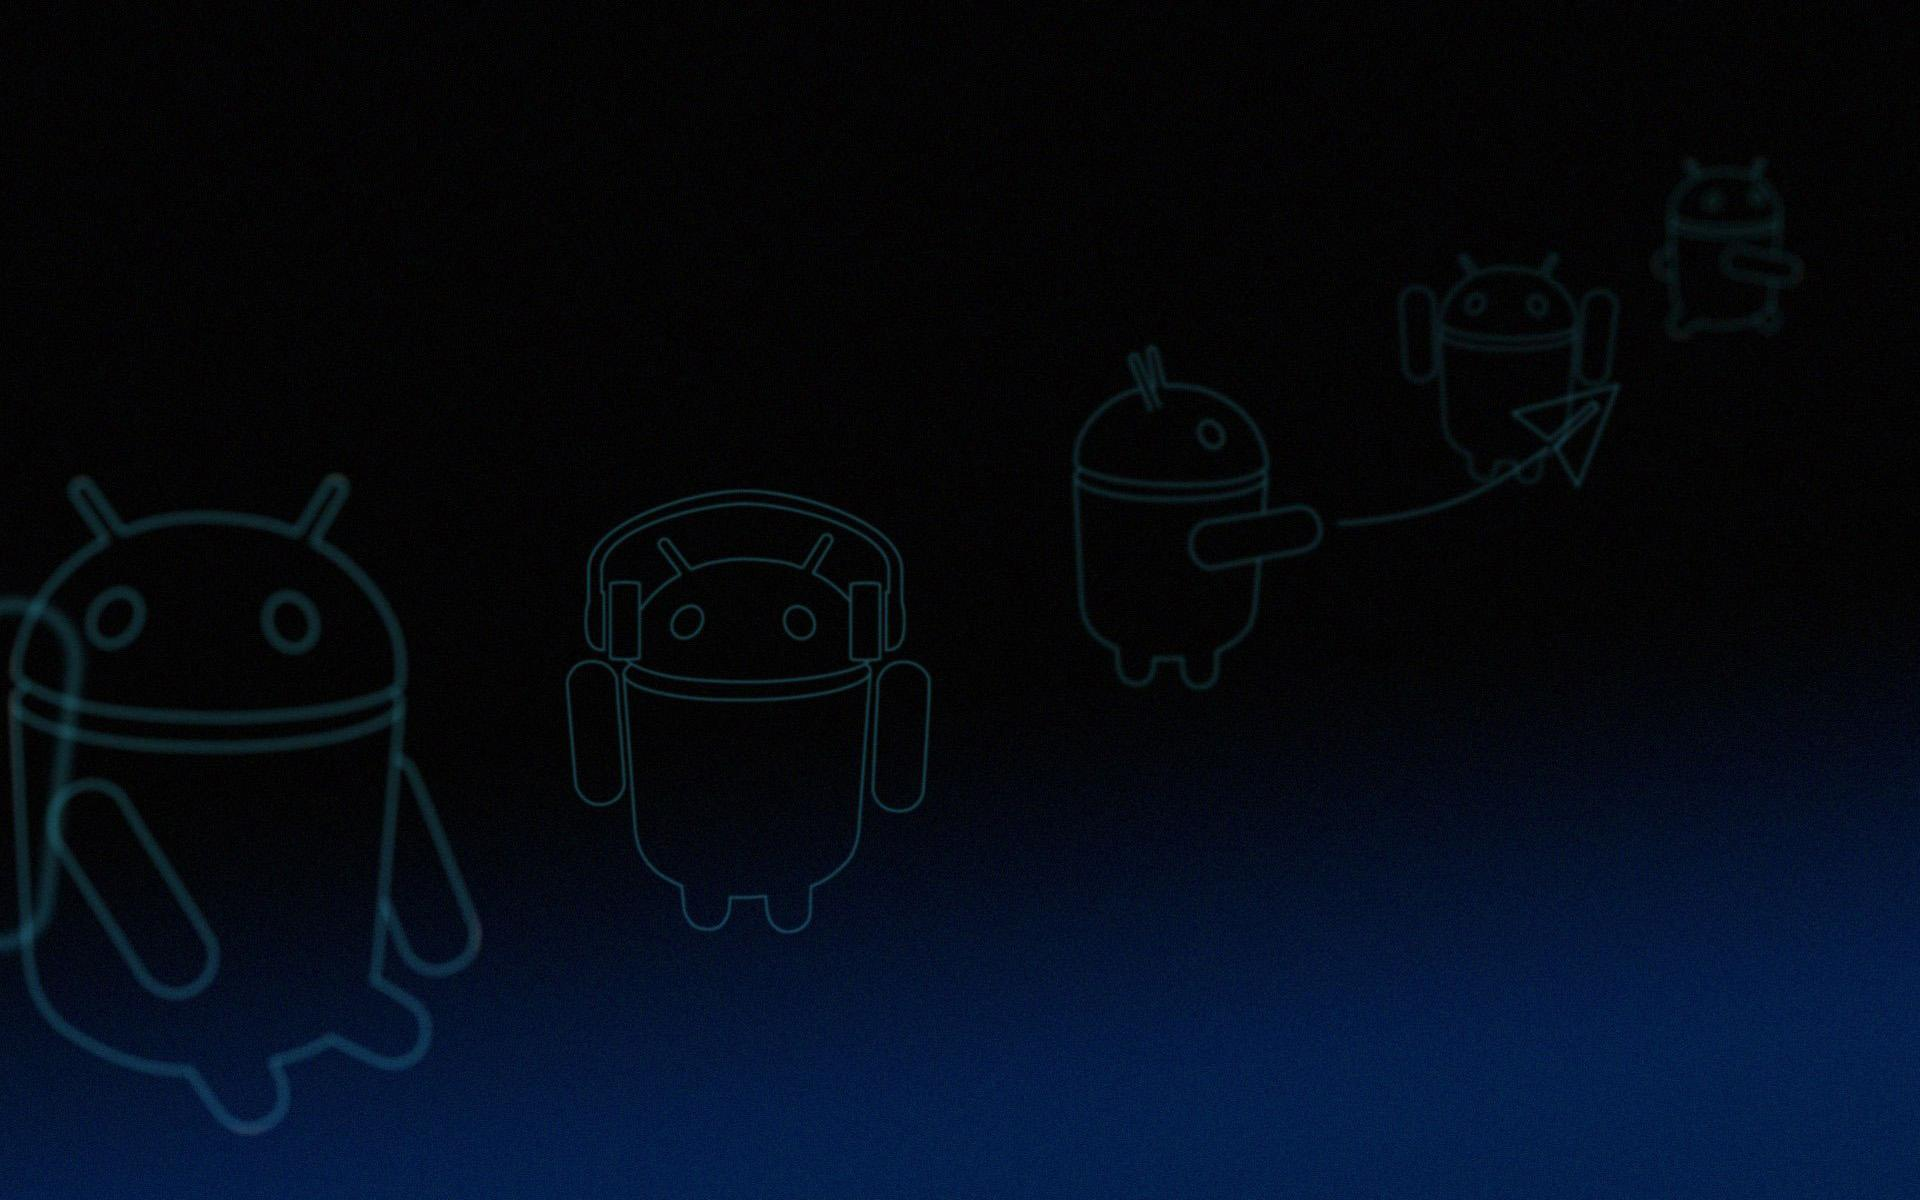 Android Honeycomb Blue Linebots